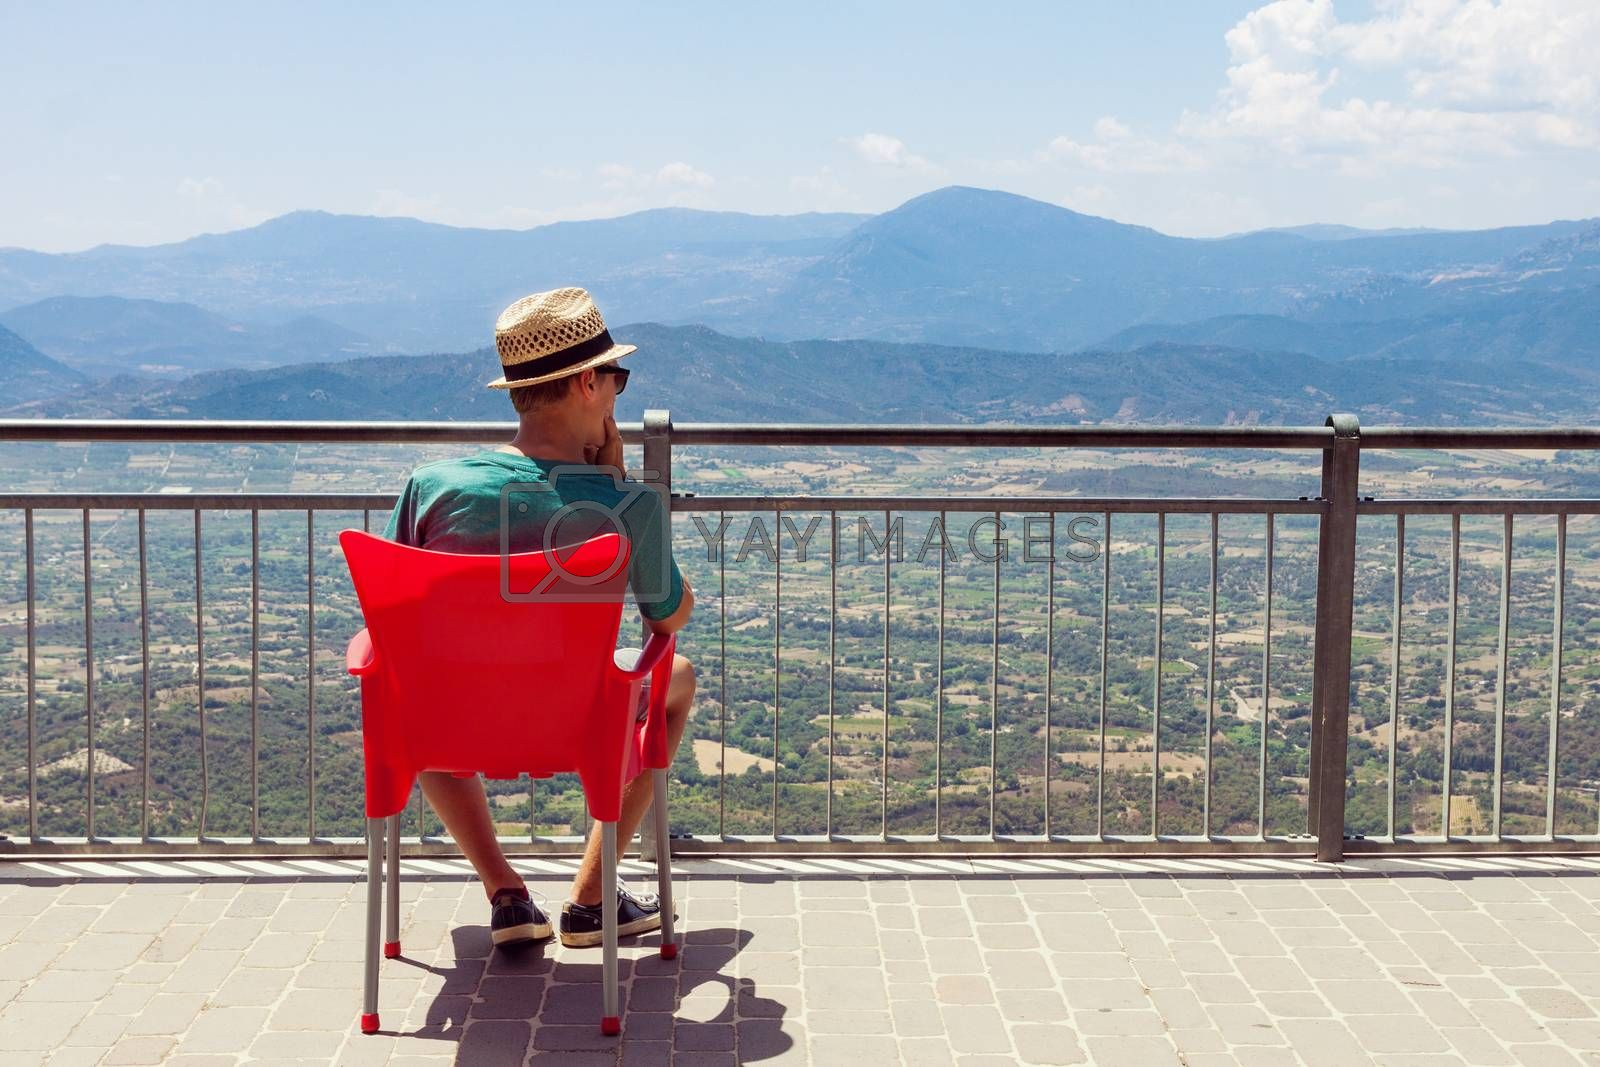 Teenager sitting on red chair and looking at the mountainous view in Sardinia, Italy. Picture with copy space on the right